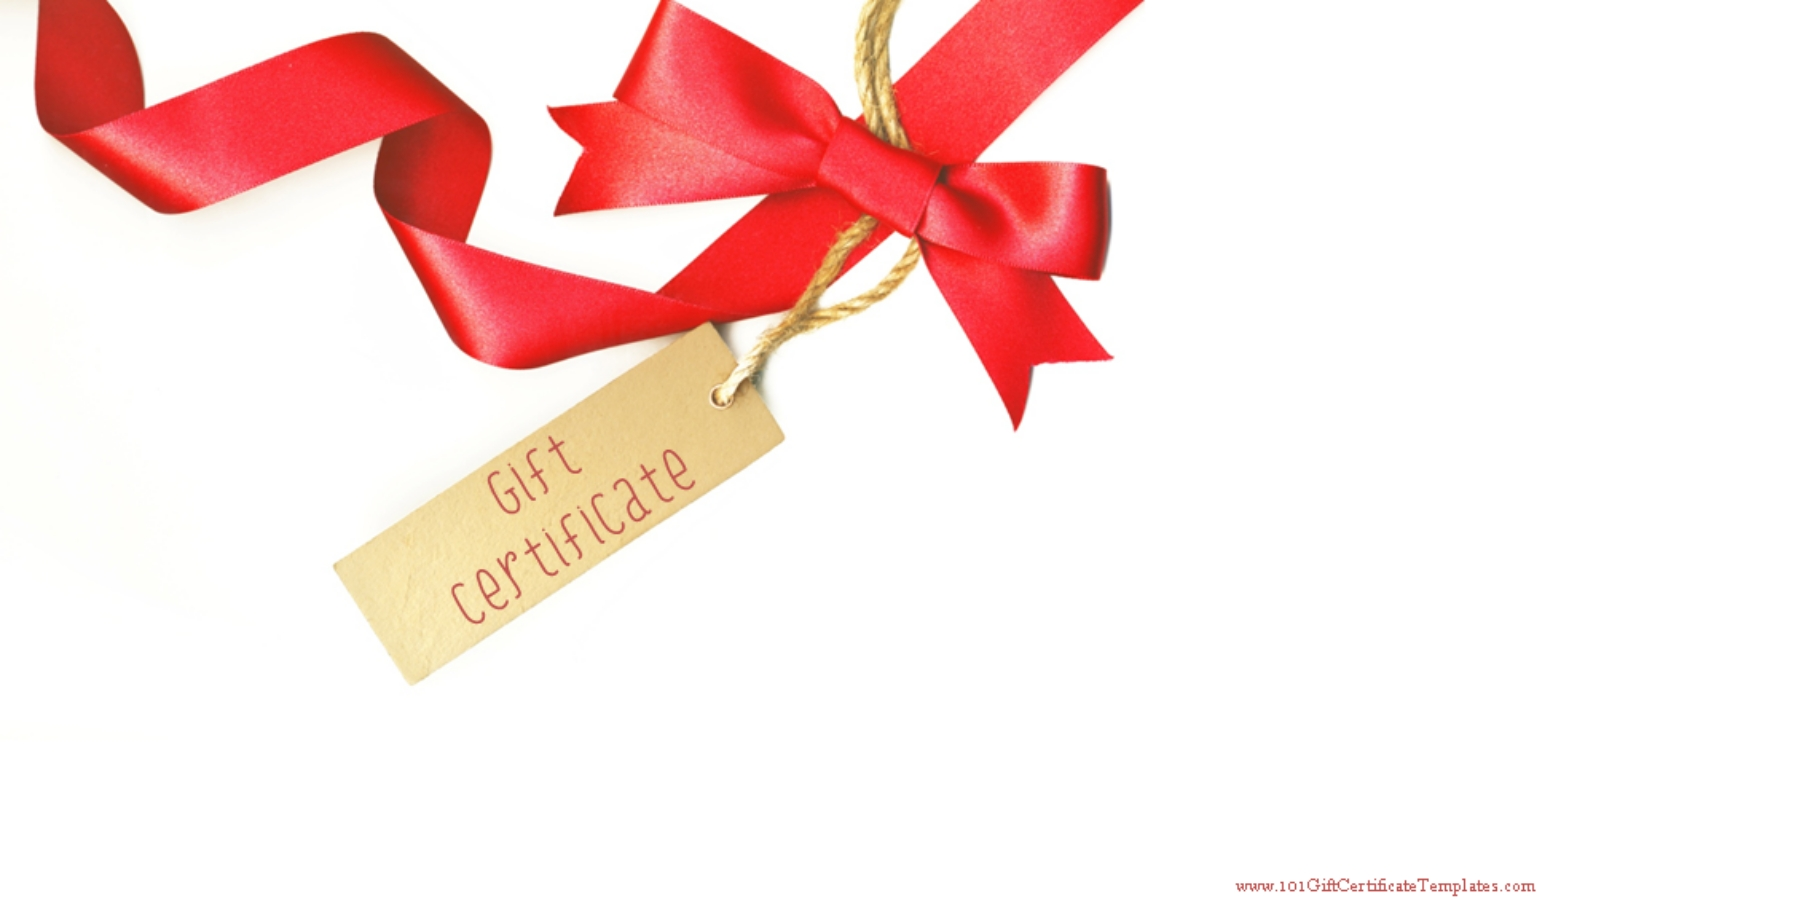 Gift Certificates And Gift Cards For Dowtown Toronto